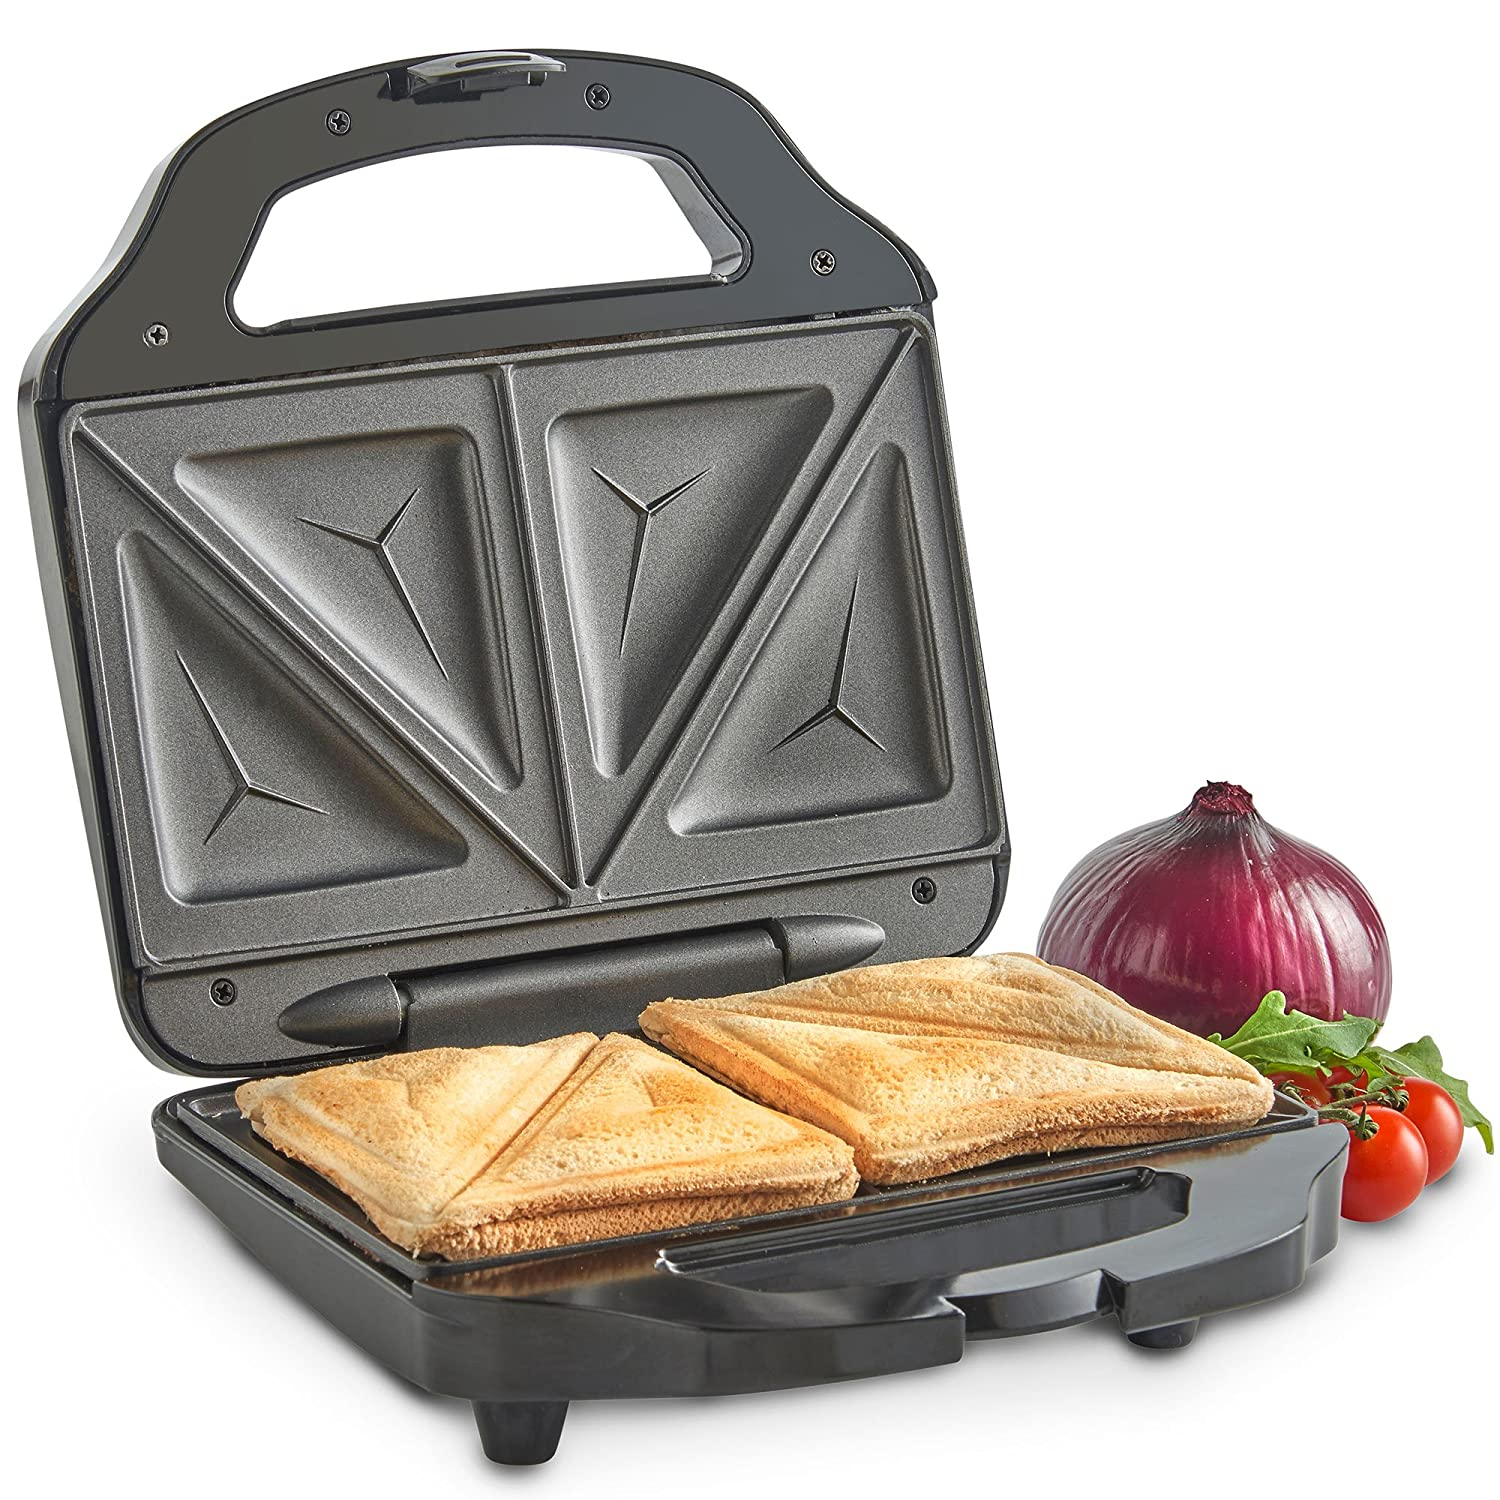 KITCHEN Electric Sandwich Waffle 2 Slice Automatic Griller Panini Toastie Press